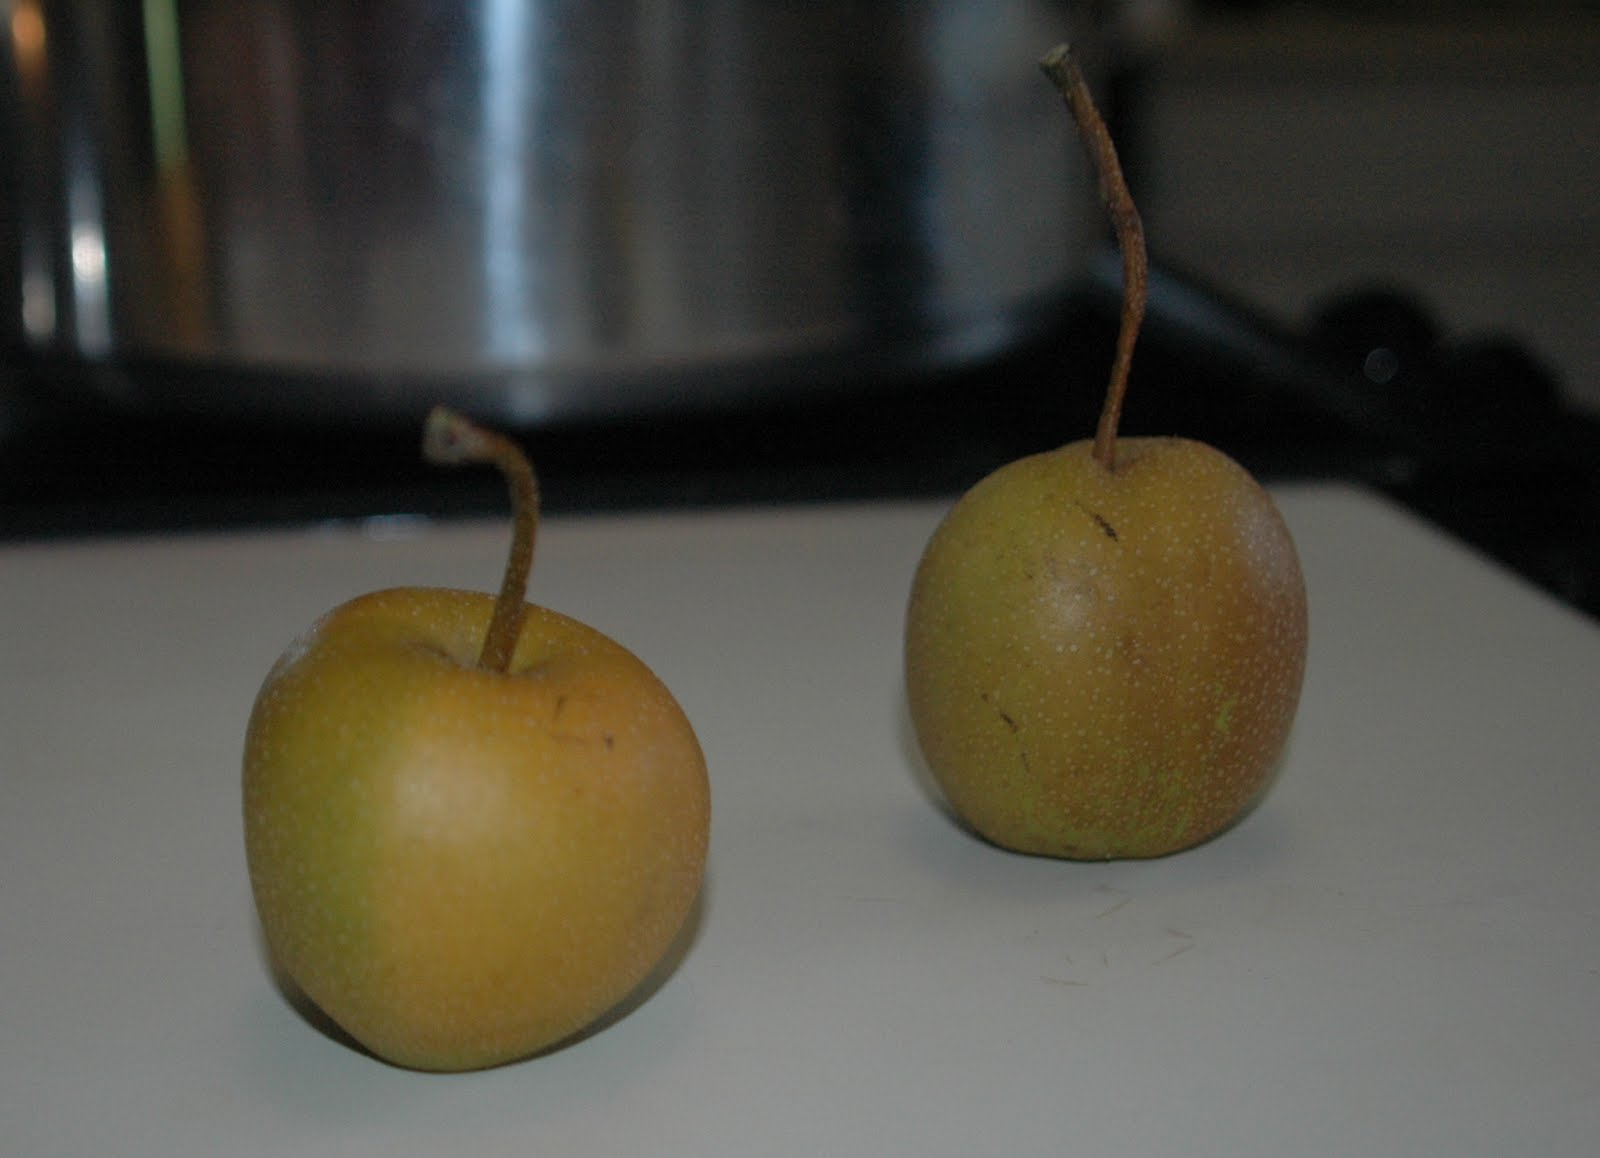 Shinko asian pear edible landscaping - Next I Contacted Edible Landscaping The Folks There End Up Being The Unfortunate Recipients Of Any Fruity Questions I Have That Can T Be Solved By A